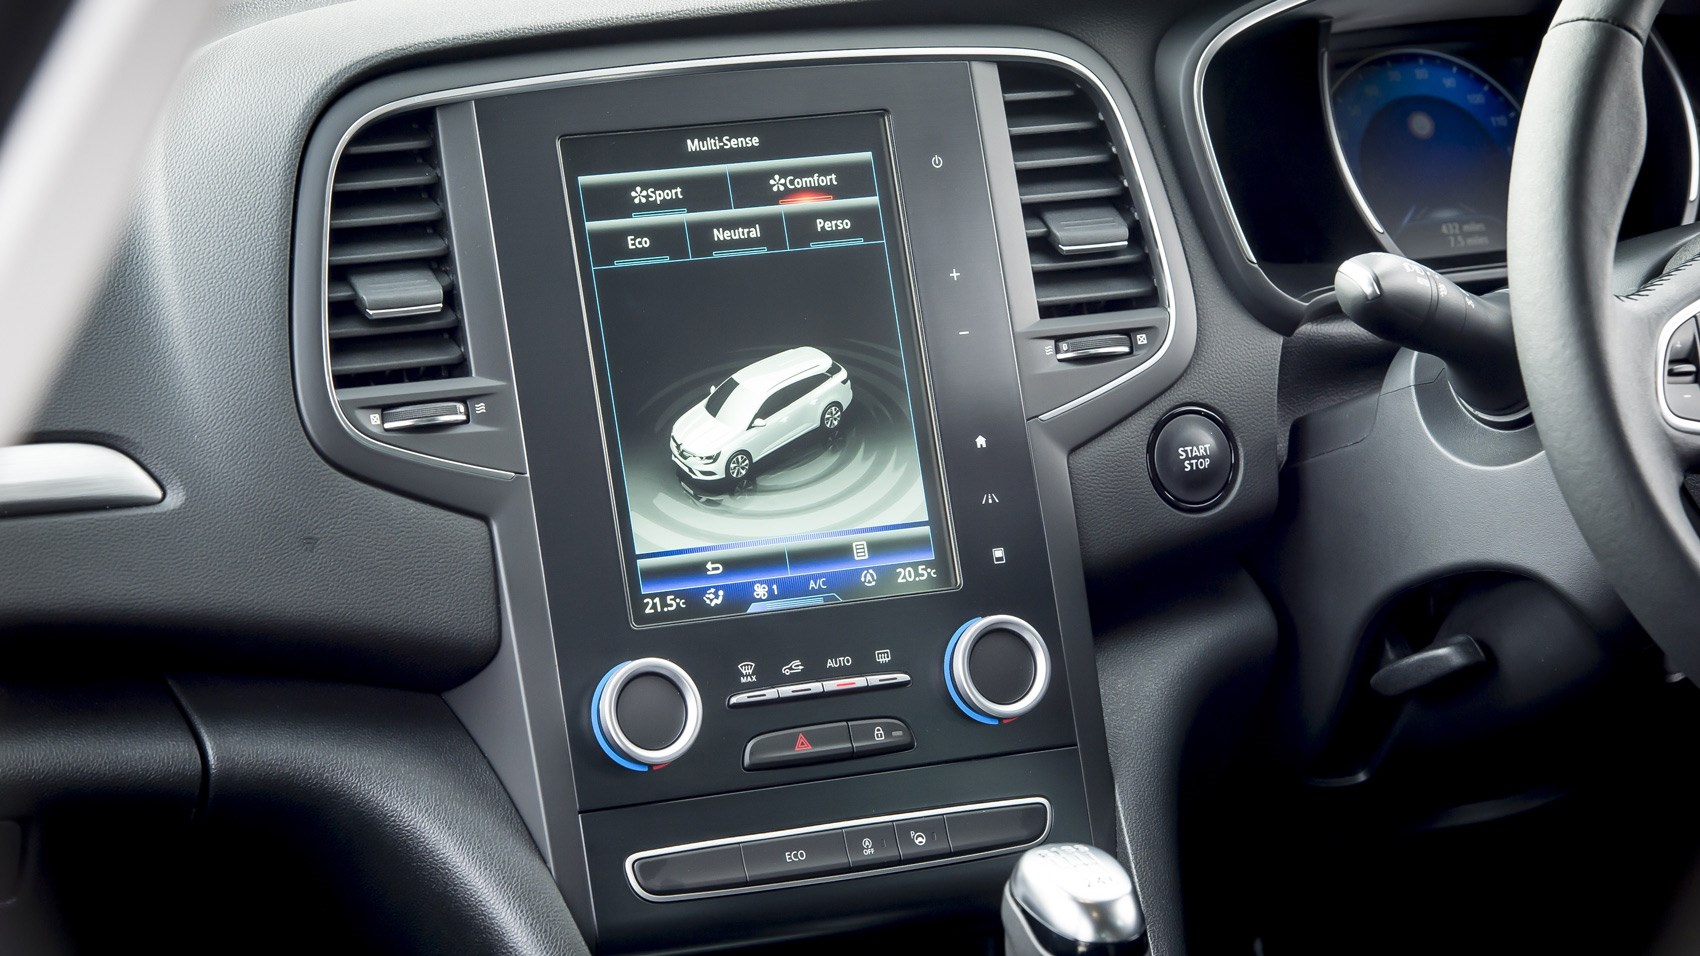 Renault Megane estate infotainment